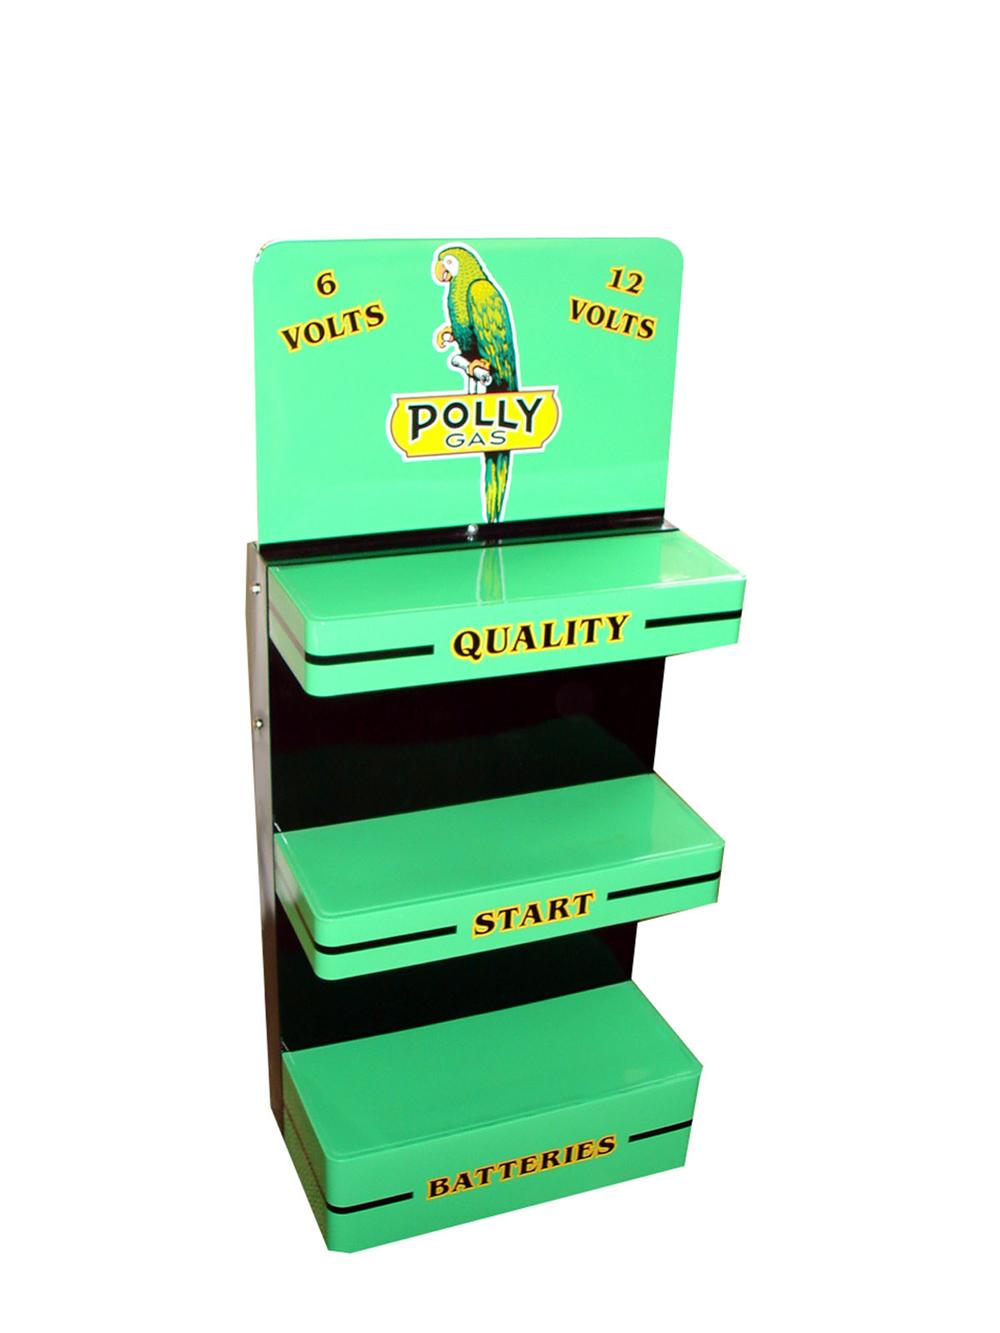 Nicely restored 1940s-50s Polly service station Battery display rack. - Front 3/4 - 97747